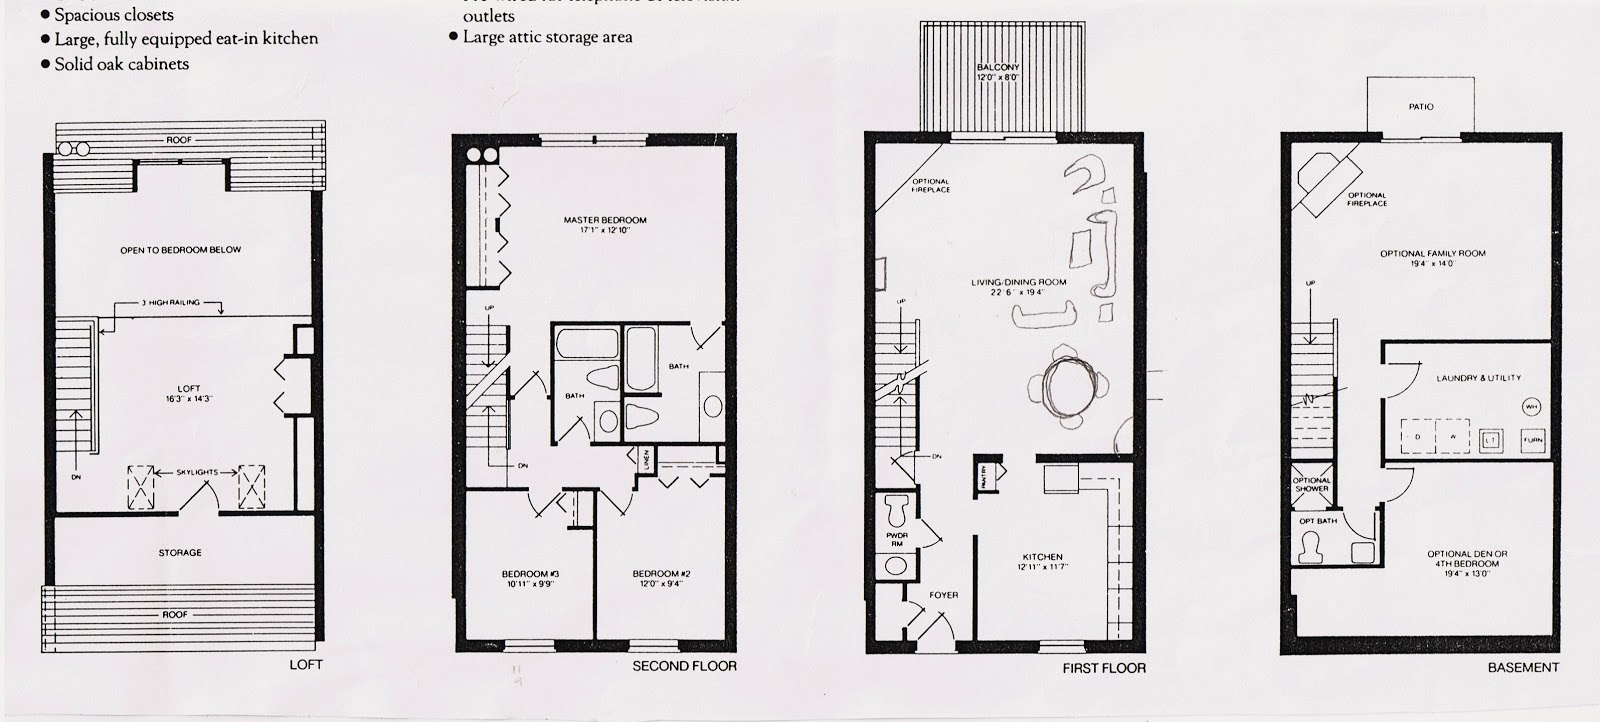 7 x 10 bathroom floor plans wood floors